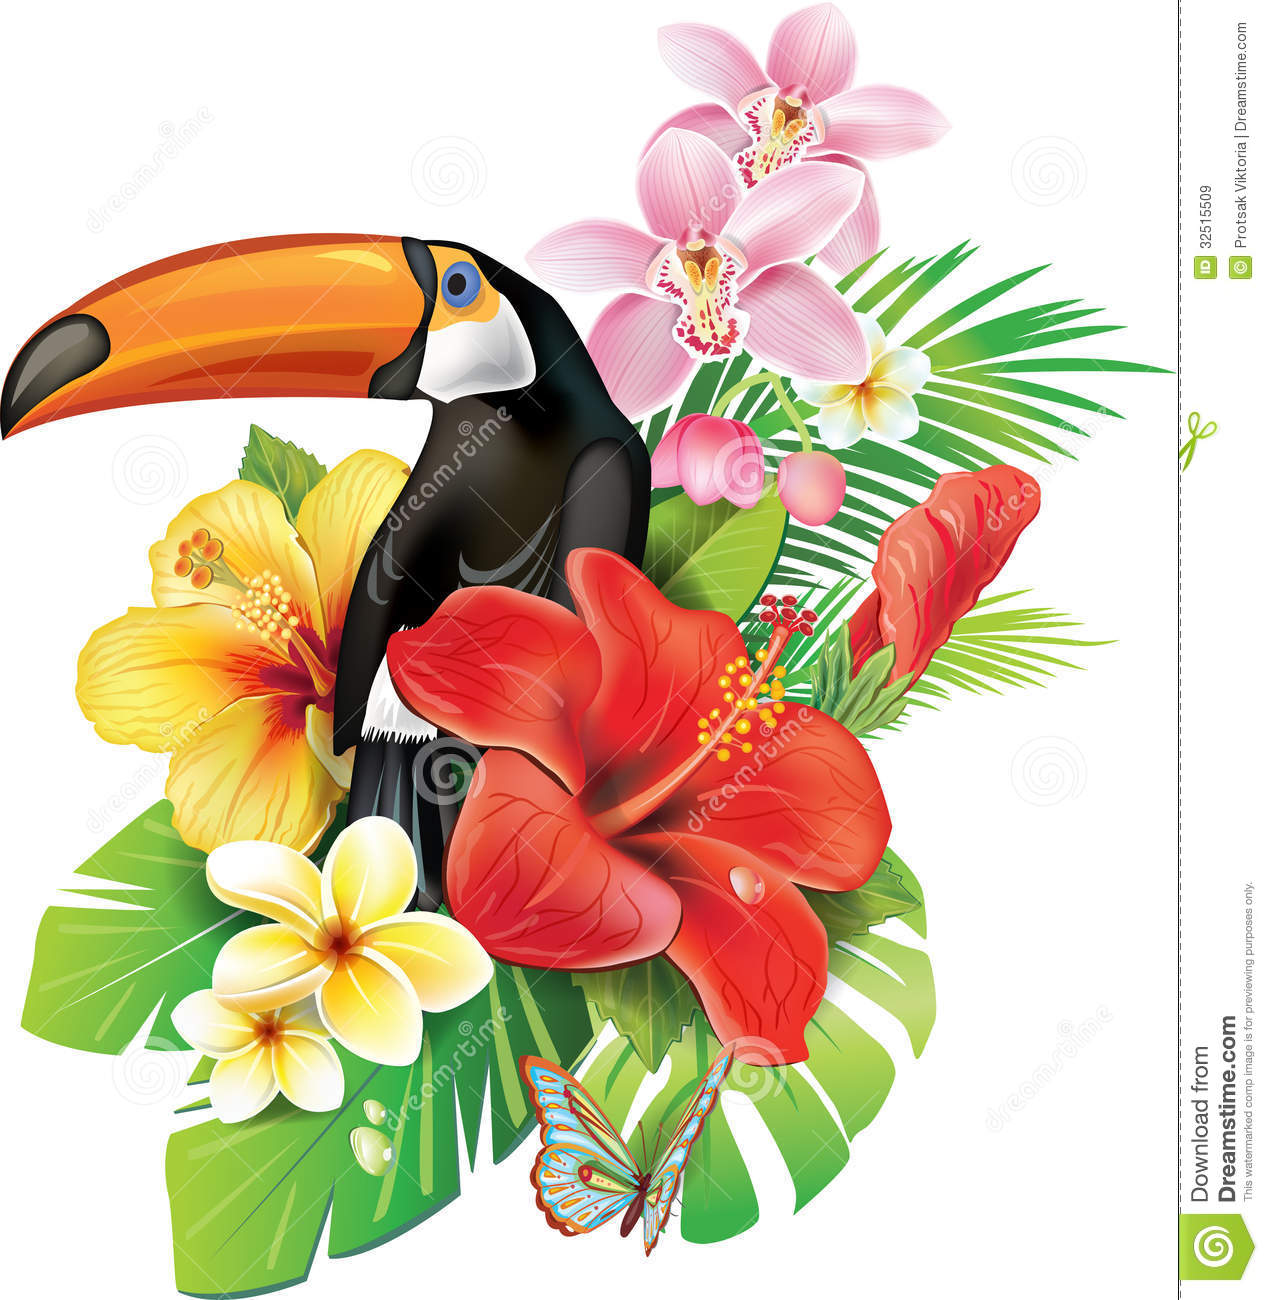 Free pictures of tropical flowers transparent download Tropical flowers pictures free - ClipartFest transparent download